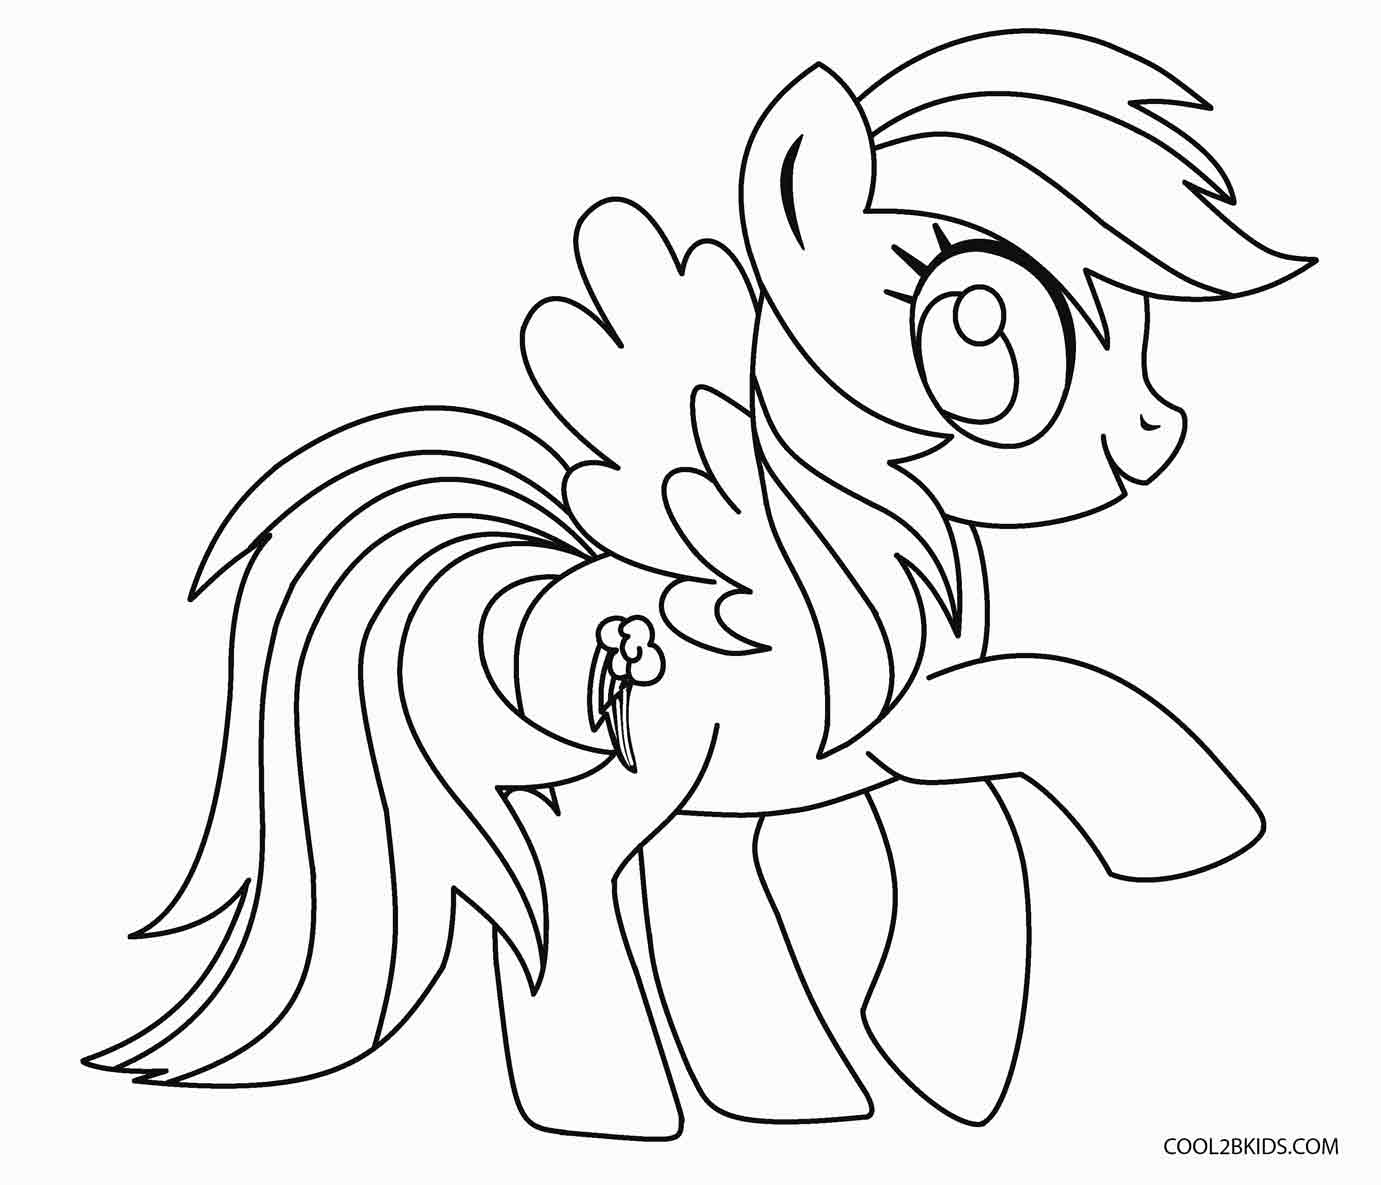 coloring cartoon pony cartoon coloring pages cool2bkids coloring cartoon pony